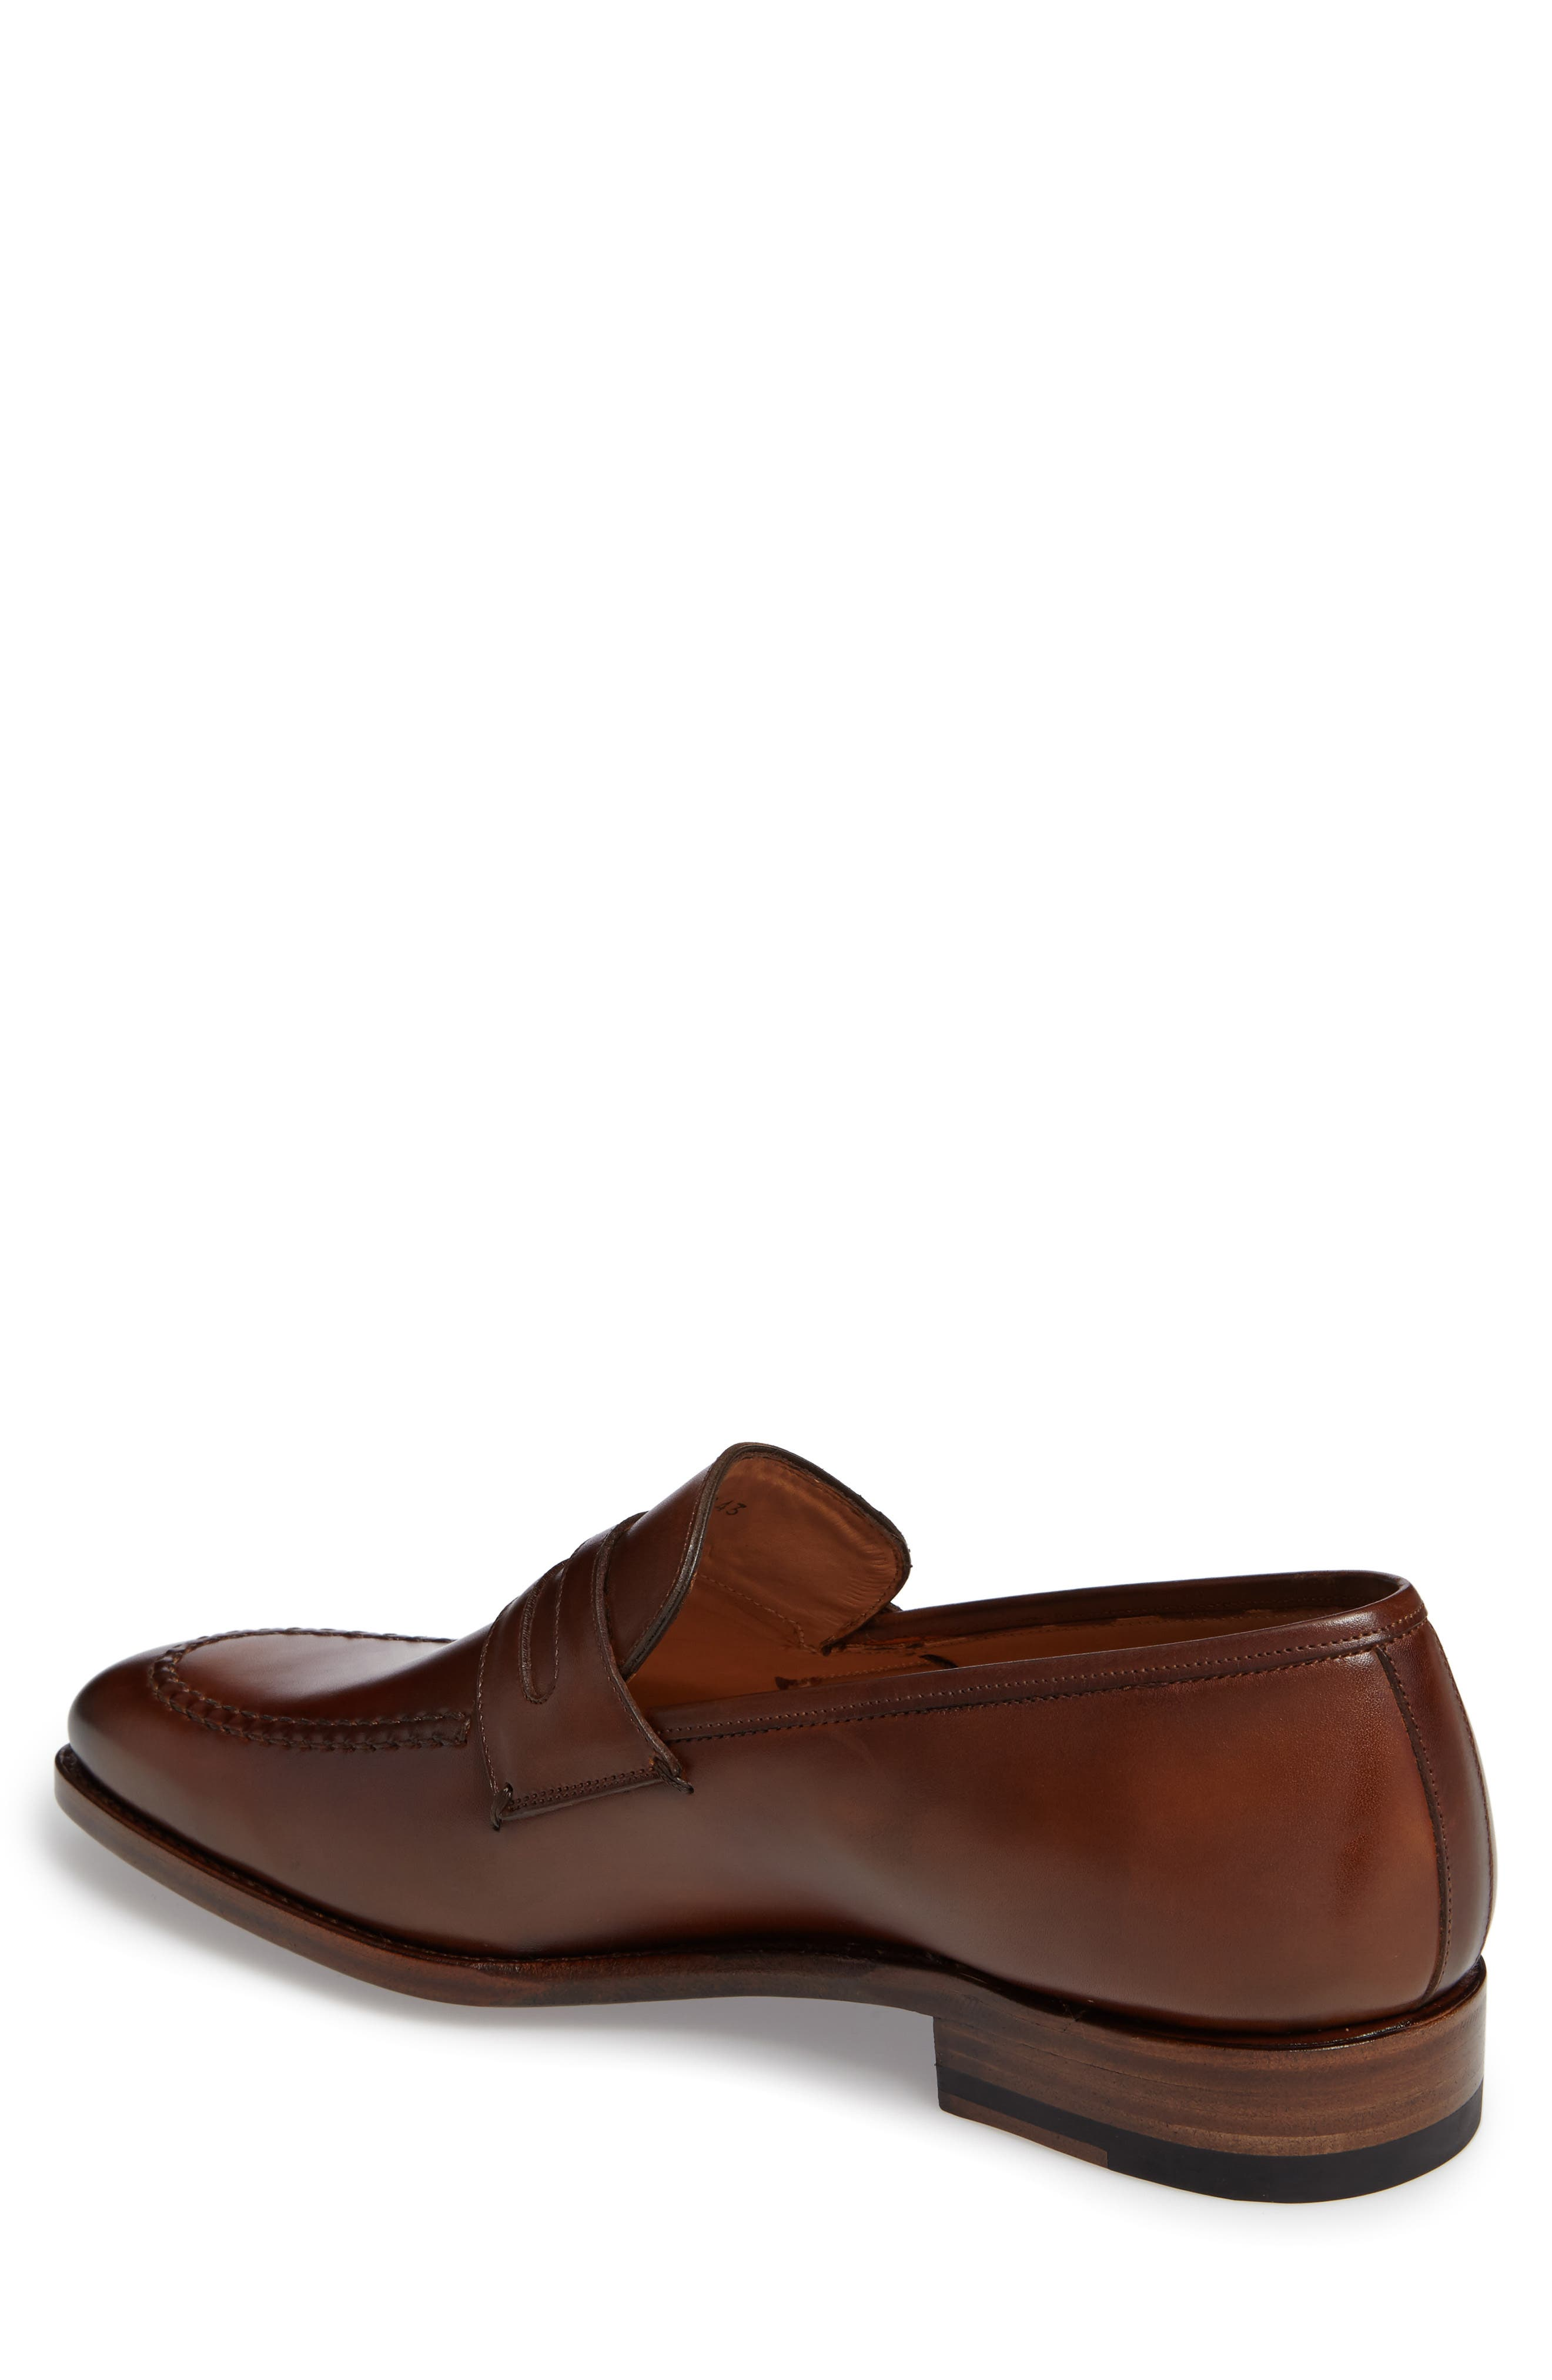 by Mezlan G124 Apron Toe Loafer,                             Alternate thumbnail 2, color,                             COGNAC